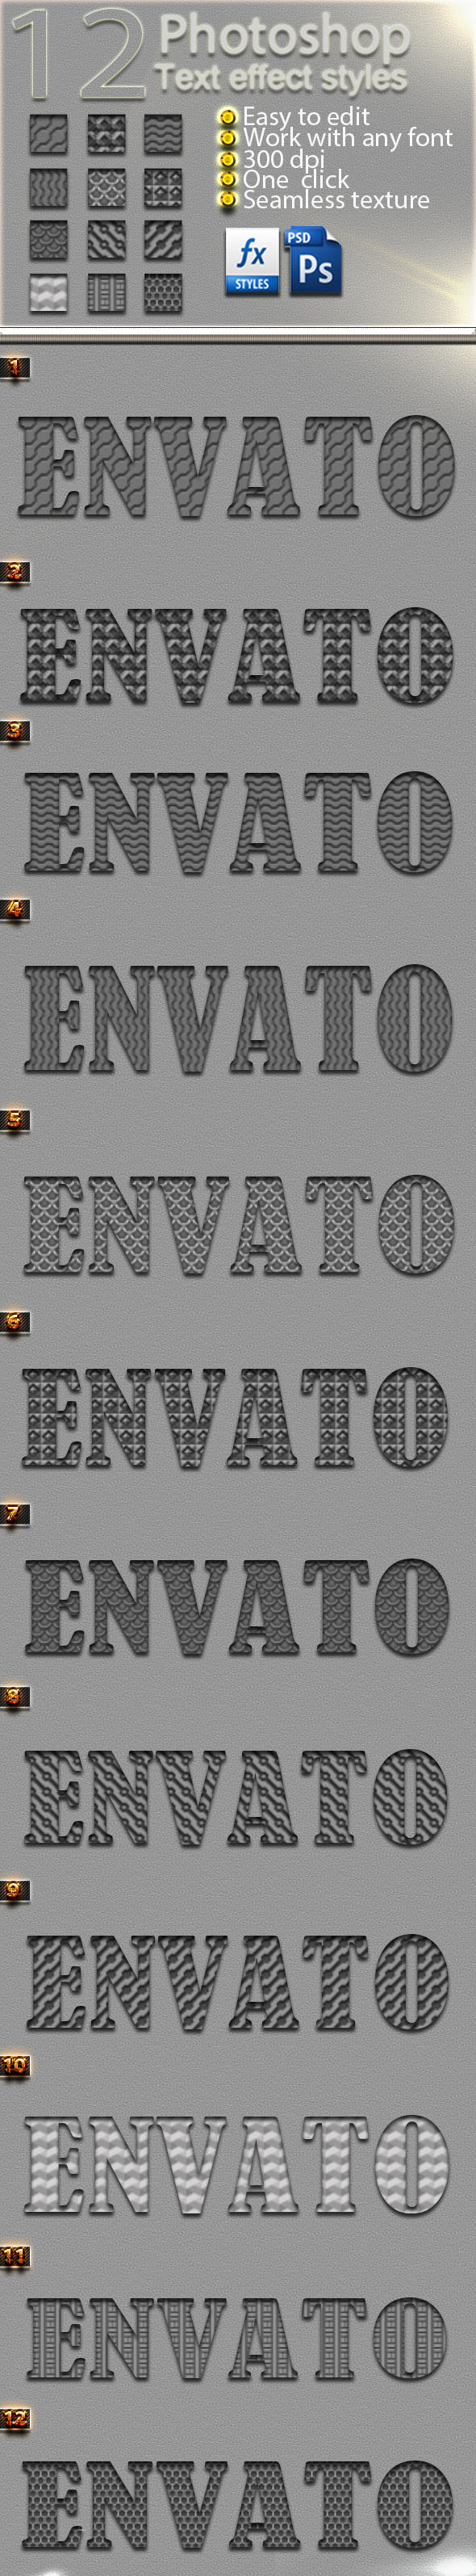 12 Photoshop Carbon Text Effect Styles Vol 31 - Text Effects Styles